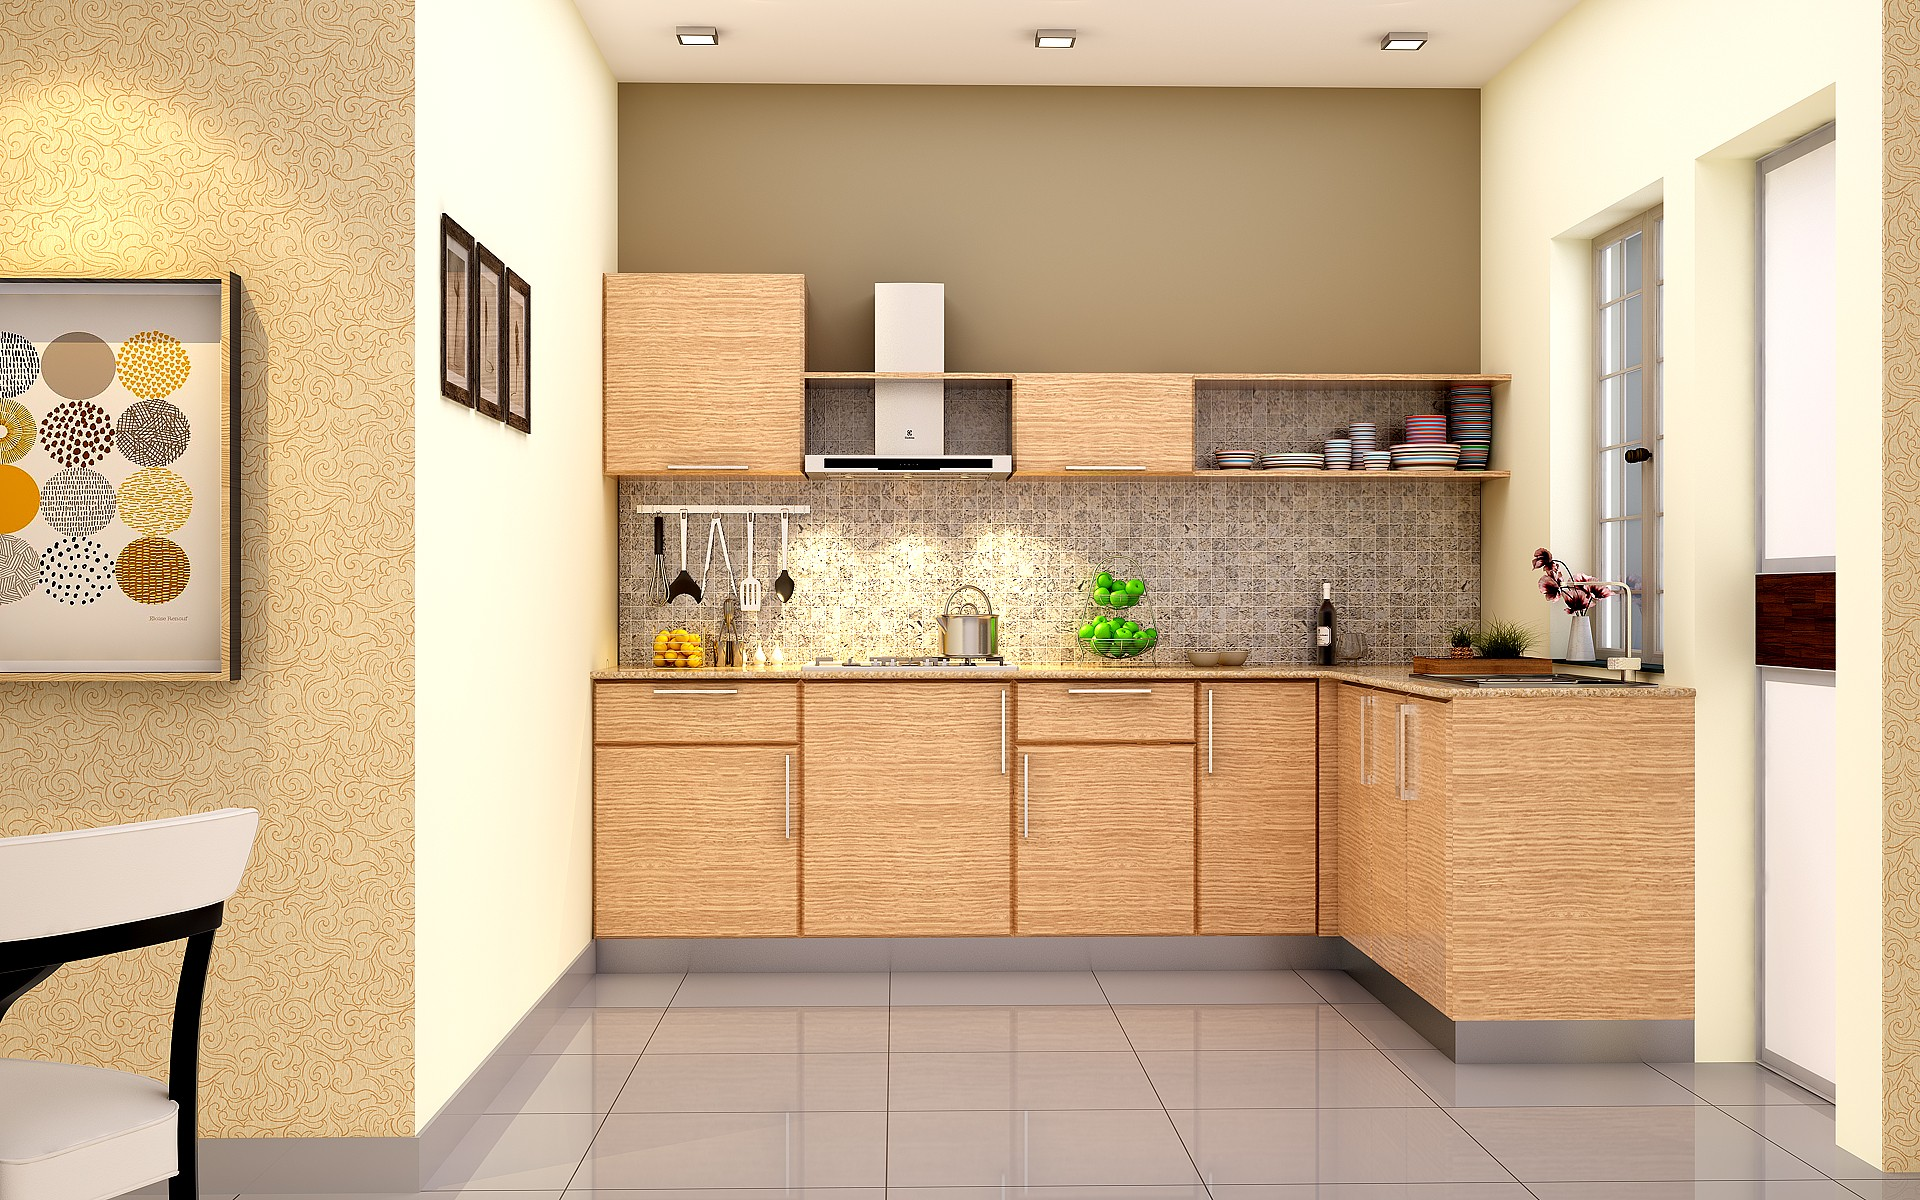 Modular Kitchen Designs Modular Kitchen Designs Small Kitchens Small Kitchen Design Ideas